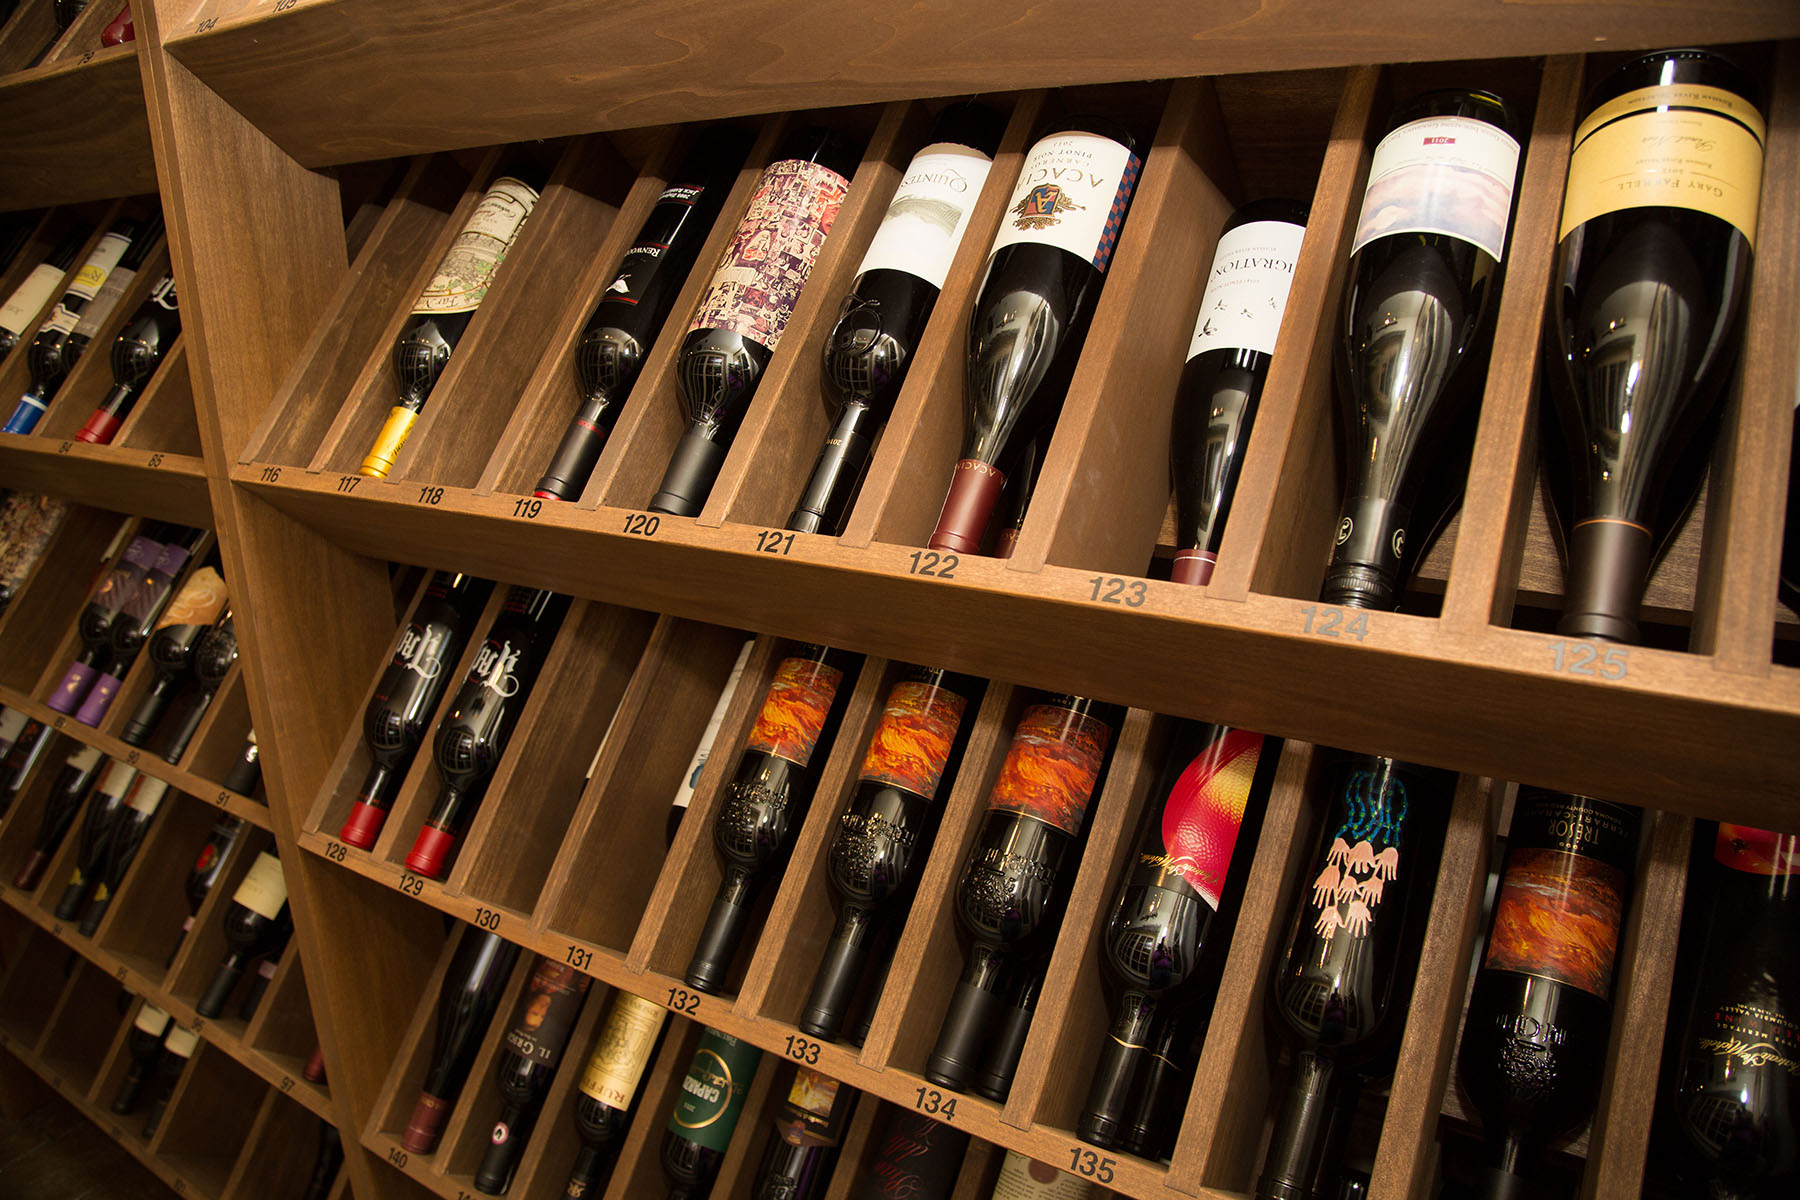 Our wine list has earned Caffe Itri the prestigious Wine Spectator Award of Excellence every year since 2003.